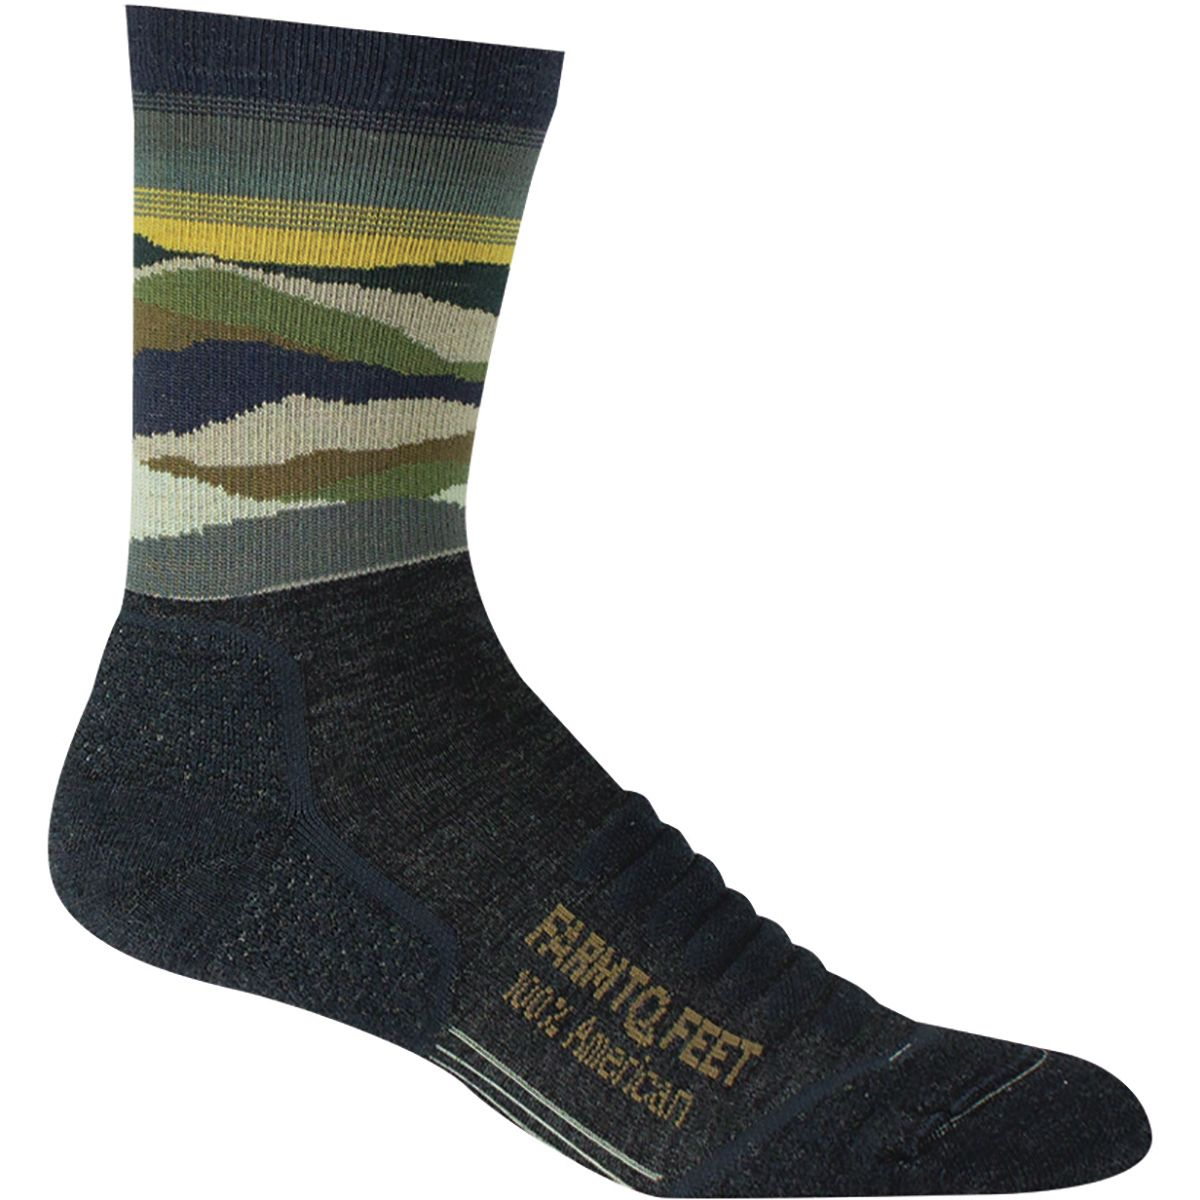 Farm To Feet Max Patch Mountain 3/4 Technical Crew Sock - Men's Charcoal, L FTF002B-CH-L